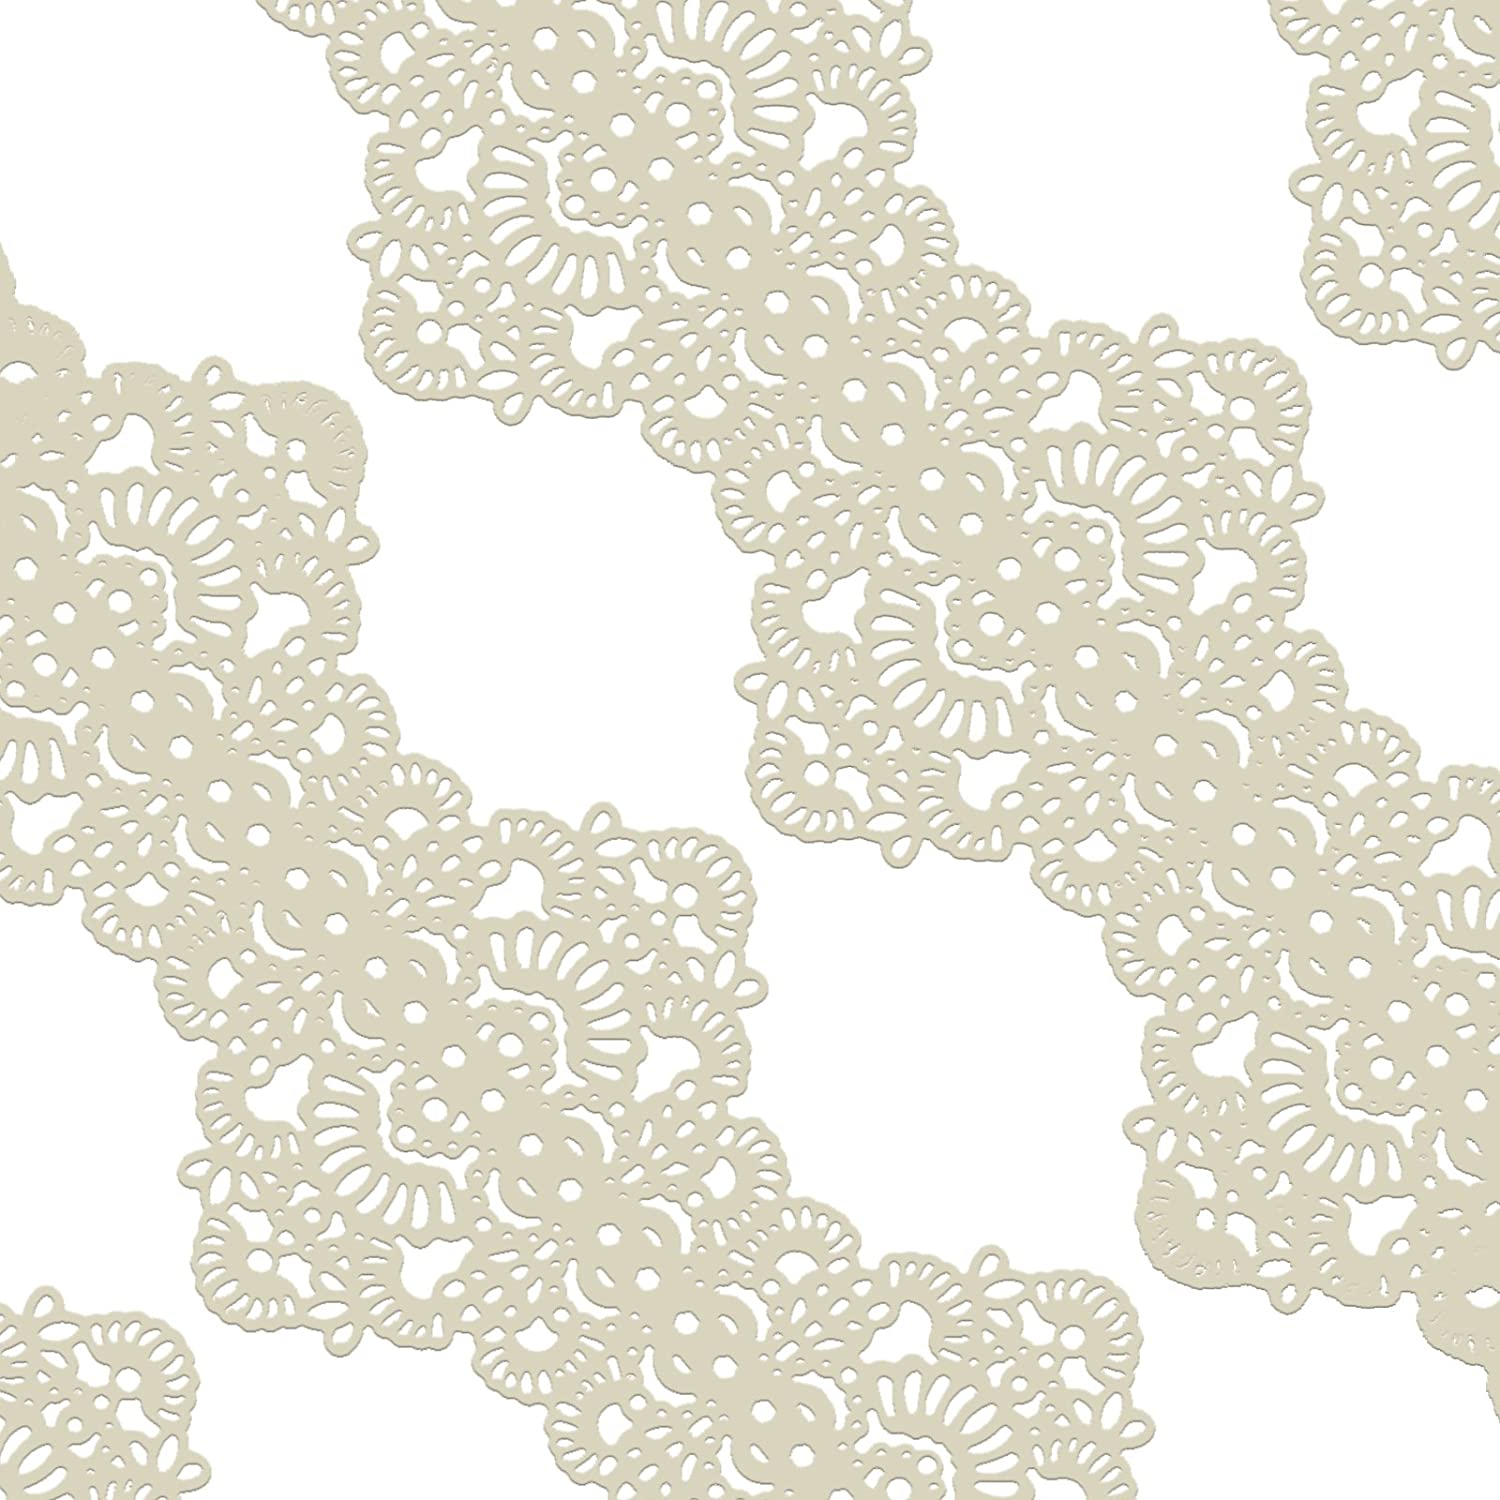 Funshowcase Large Pre-Made Ready to Use Edible Cake Lace Art Nouveau Style Applique Ivory White 14-inch 10-piece Set